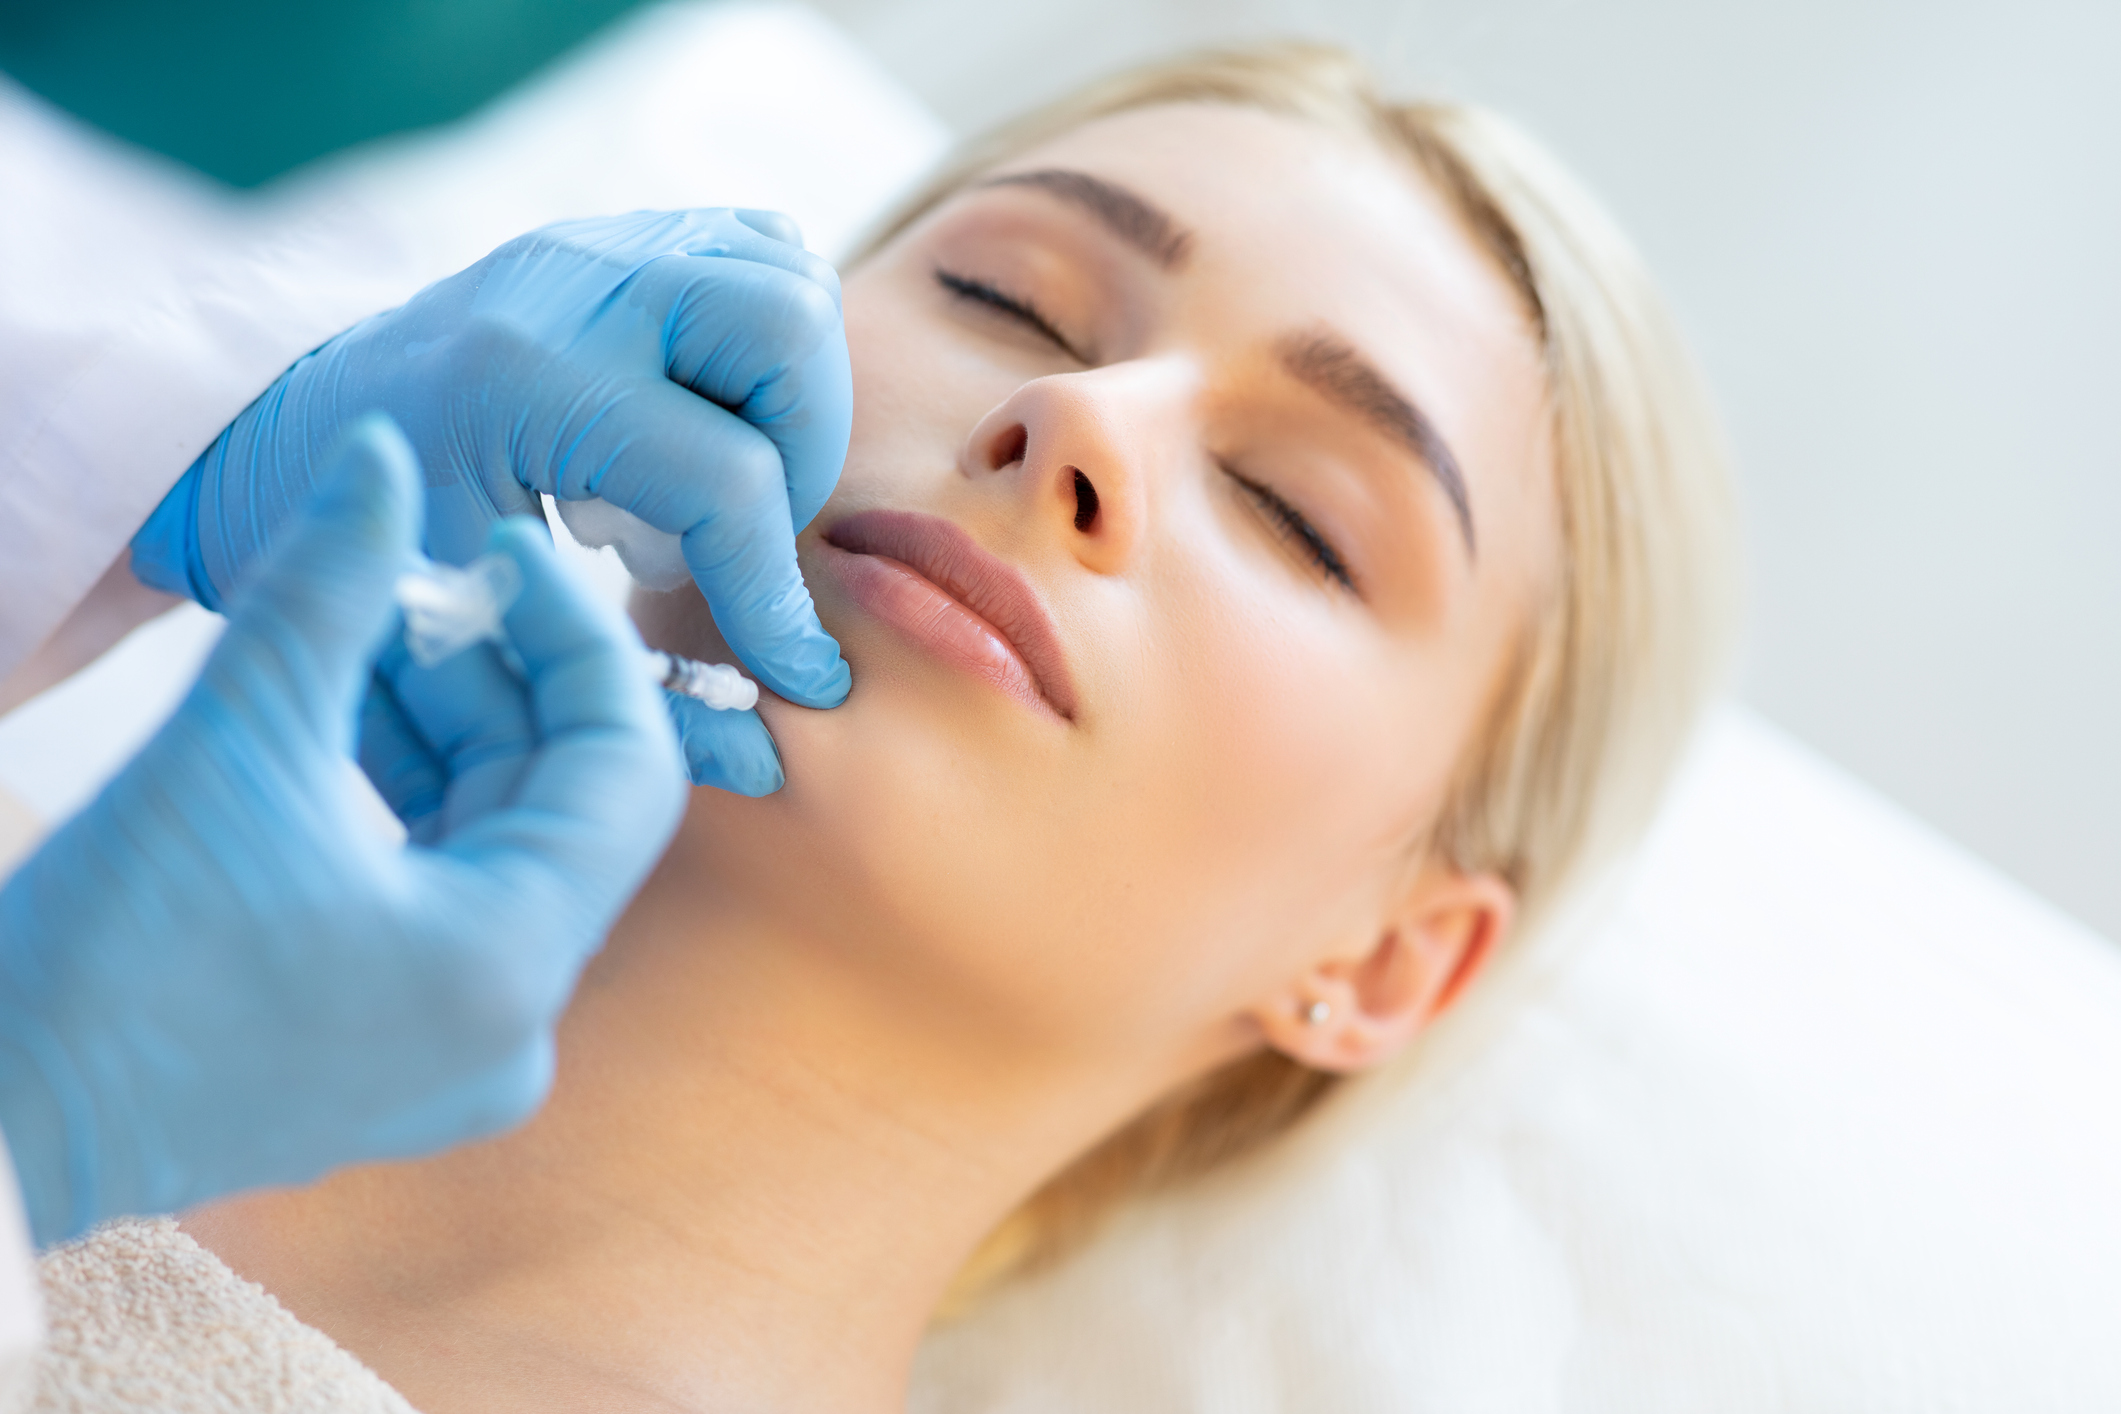 Cynthia M. Poulos MD Blog | What To Expect When Getting Botox Injections For The First Time?